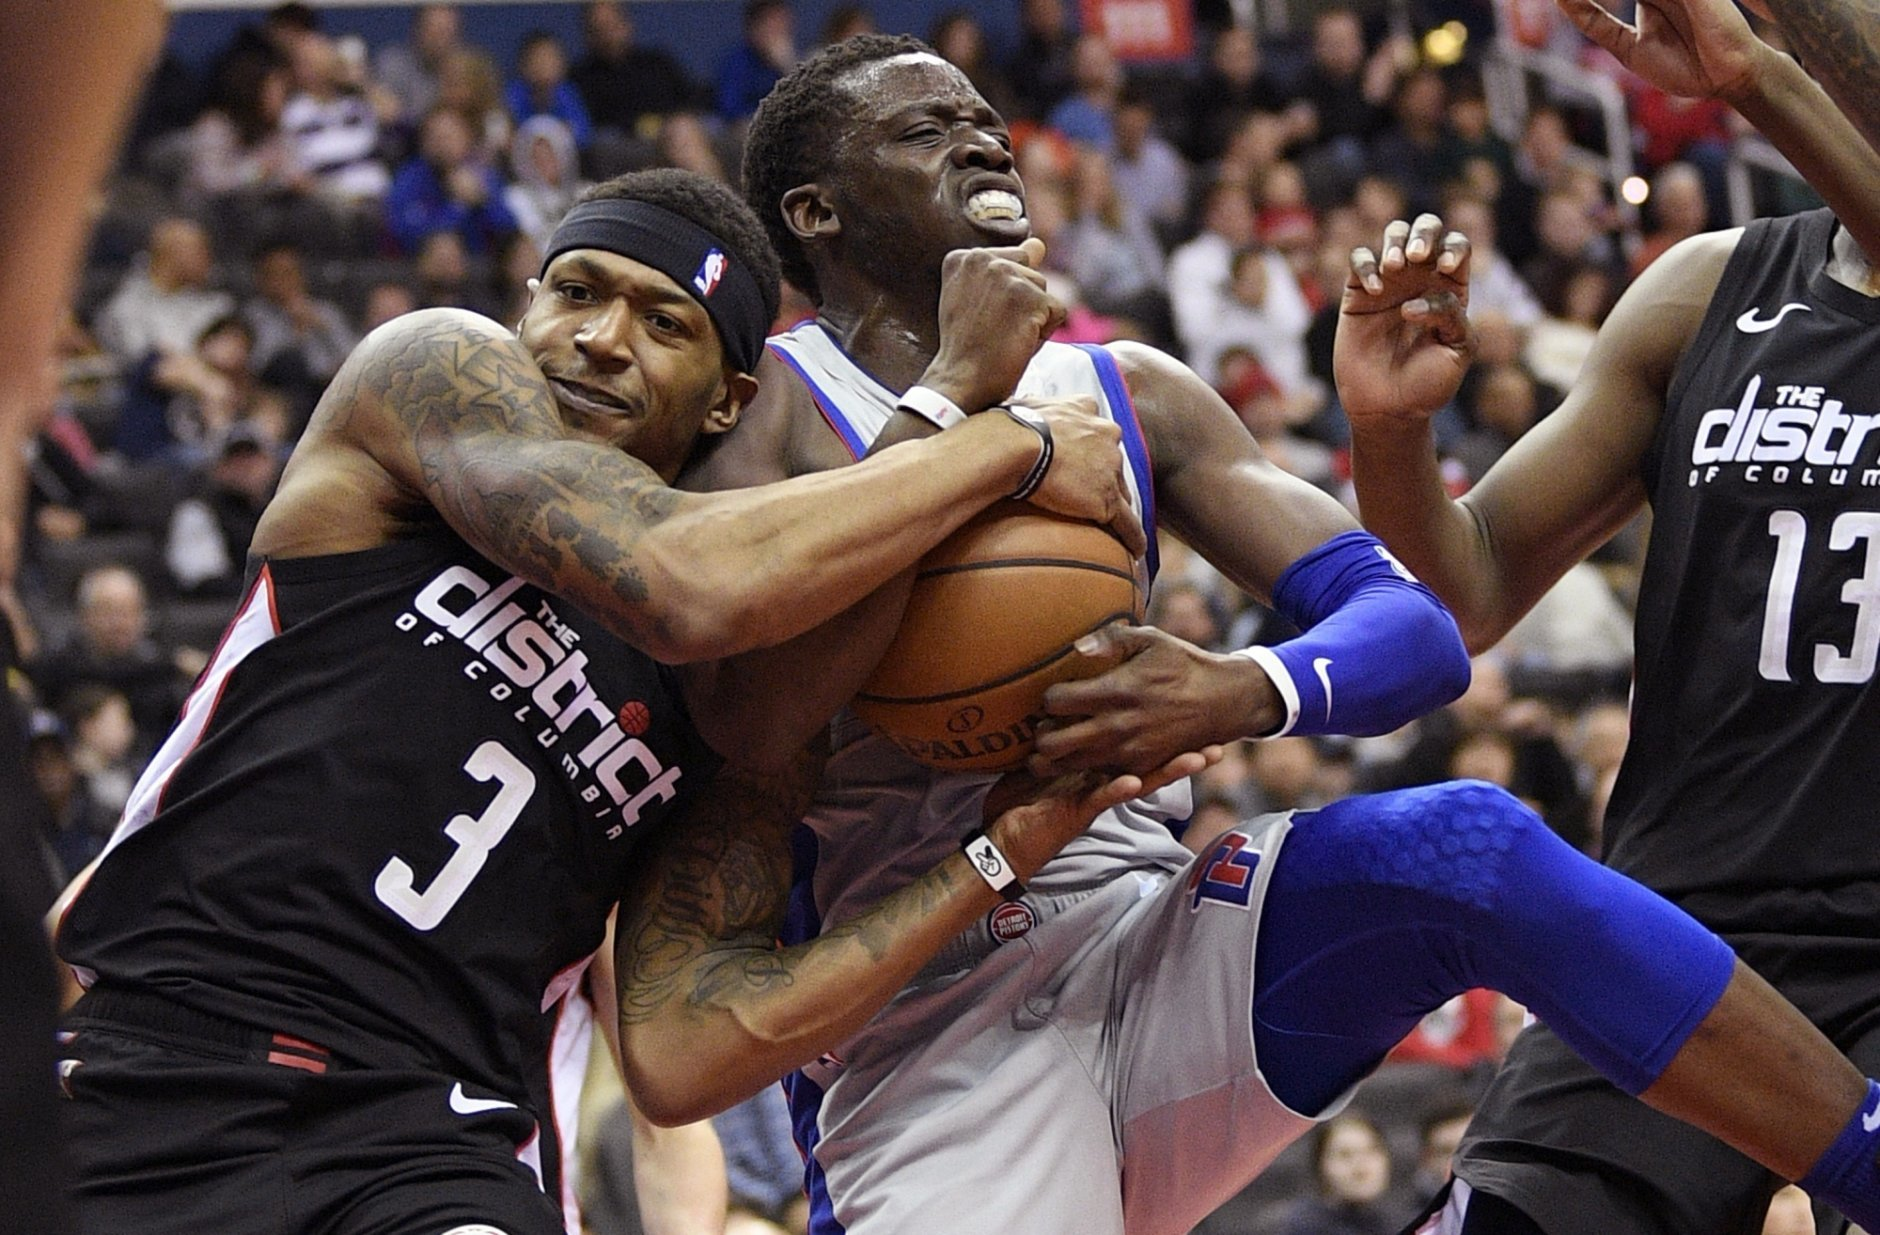 Washington Wizards guard Bradley Beal (3) battles for the ball against Detroit Pistons guard Reggie Jackson during the first half of an NBA basketball game, Monday, Jan. 21, 2019, in Washington. (AP Photo/Nick Wass)